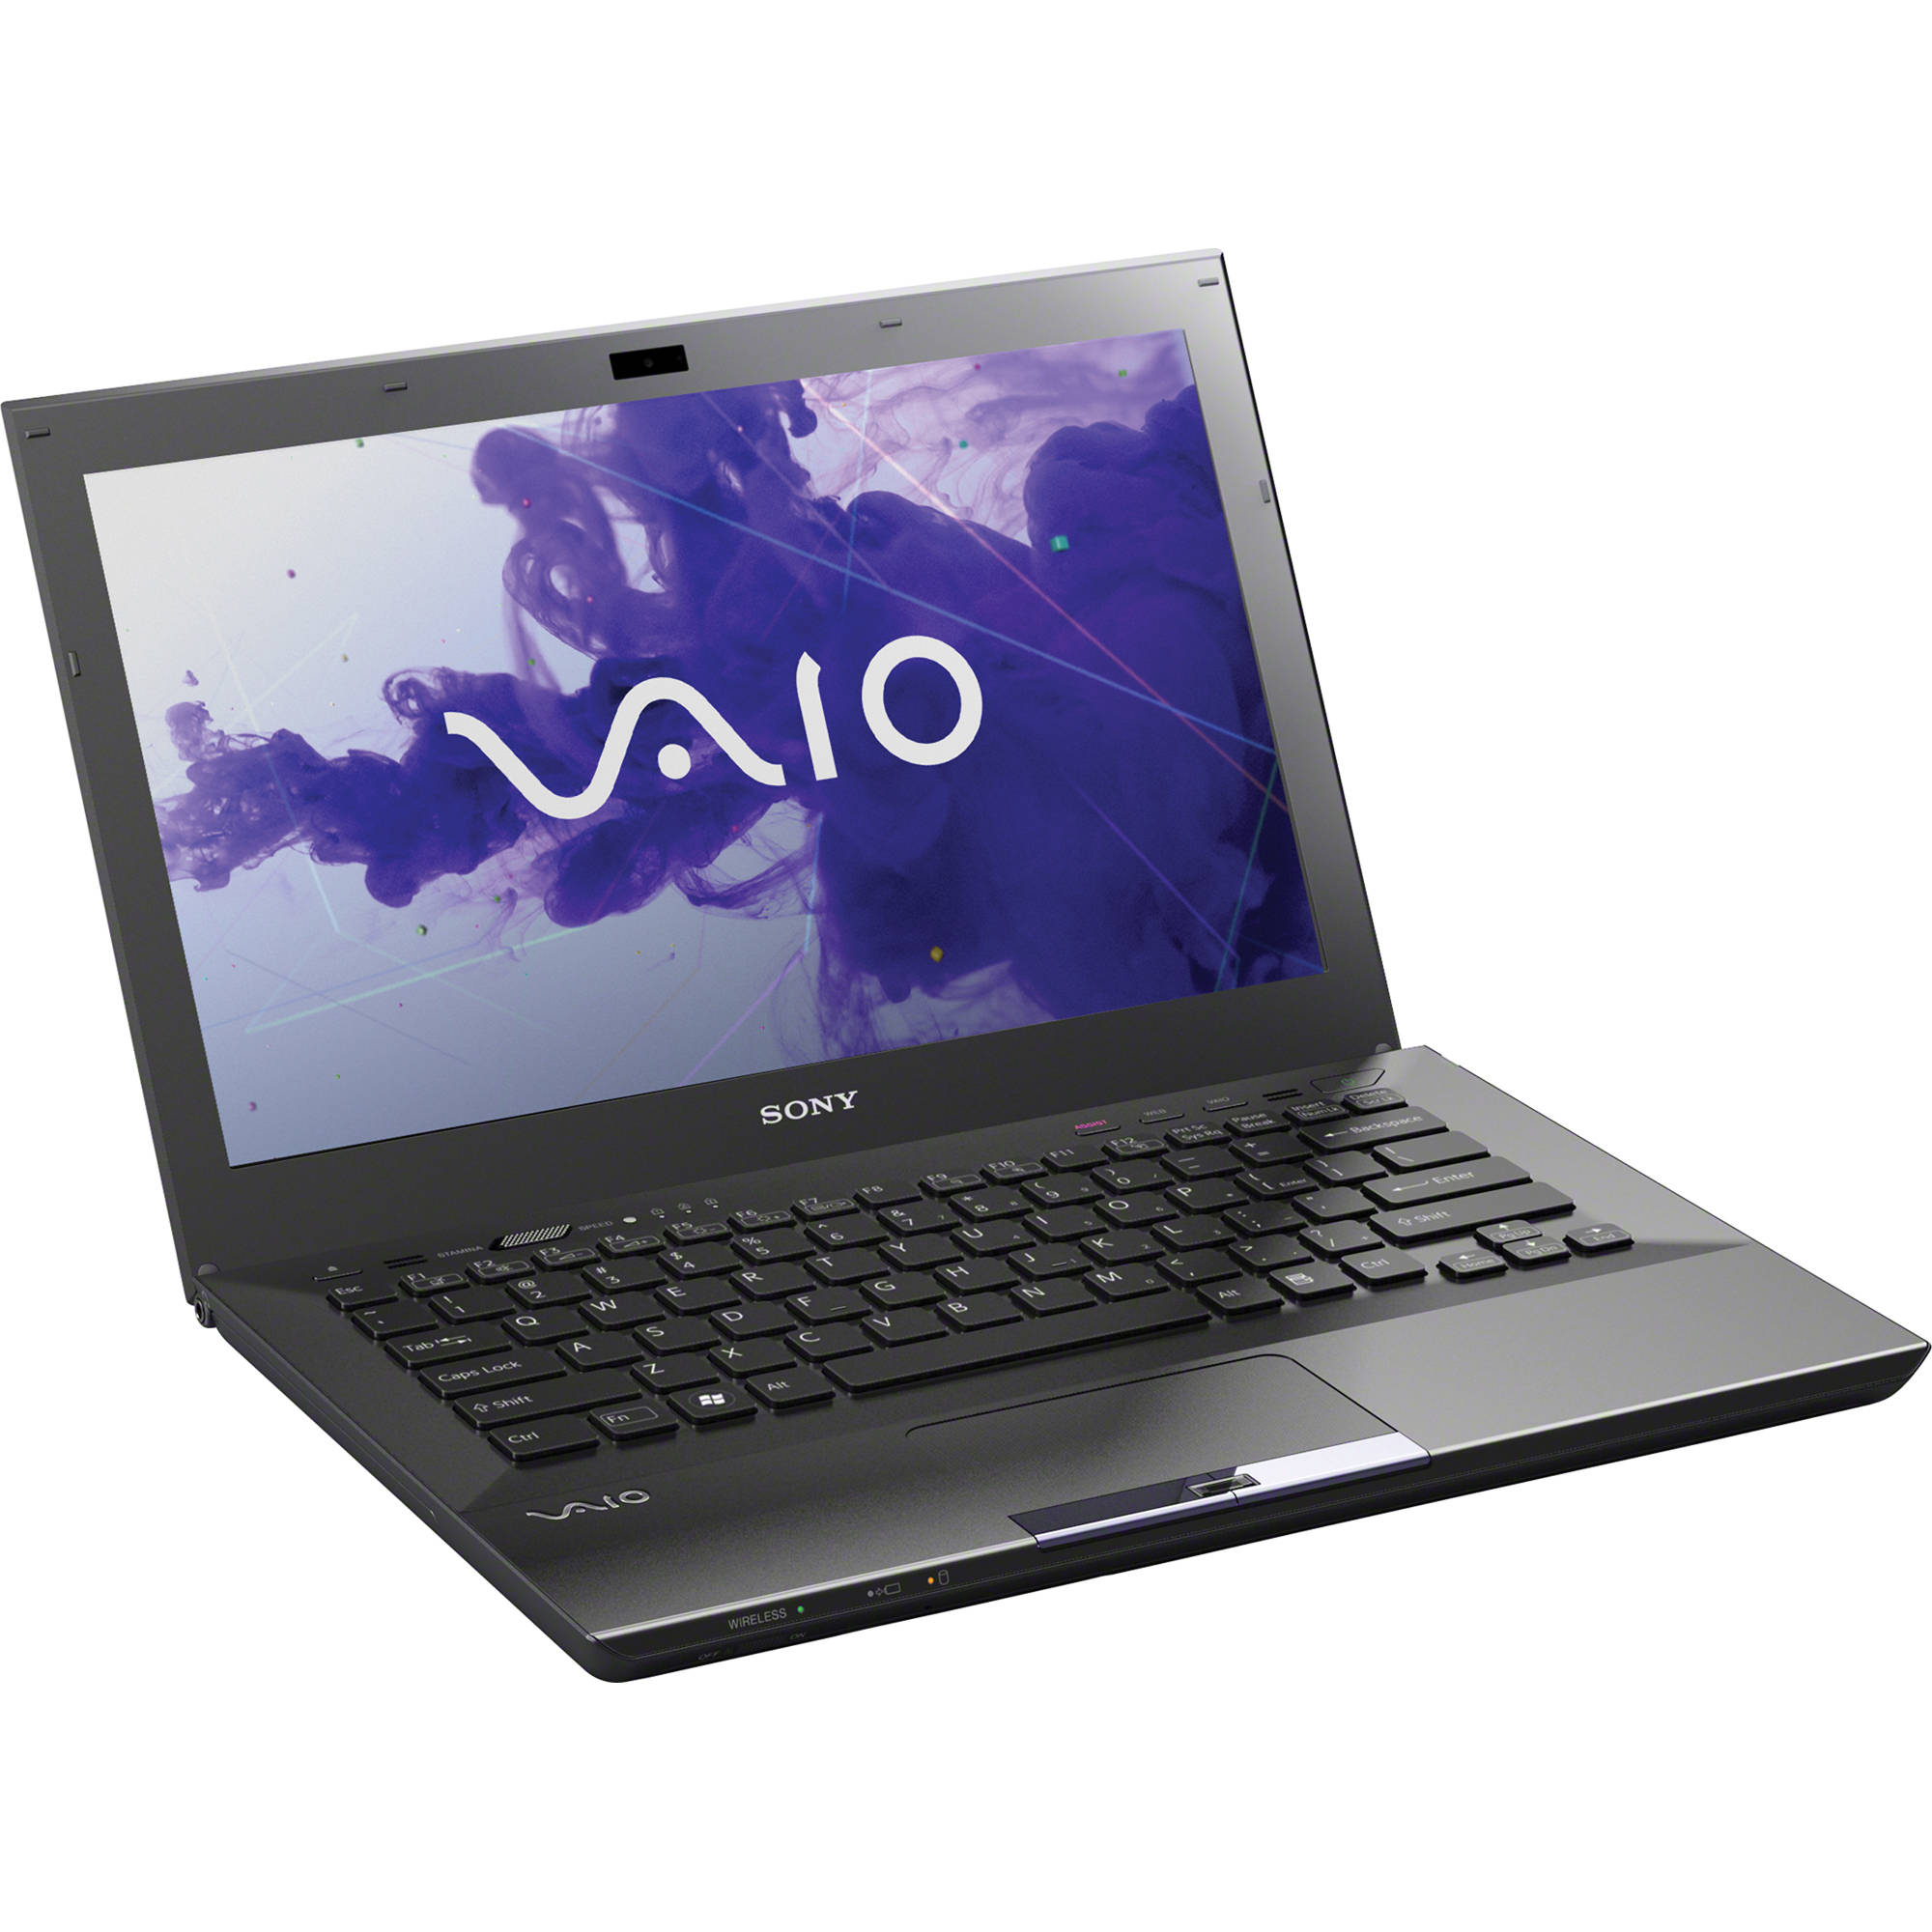 Sony Vaio VPCZ137GX/B Infineon Windows 8 X64 Treiber